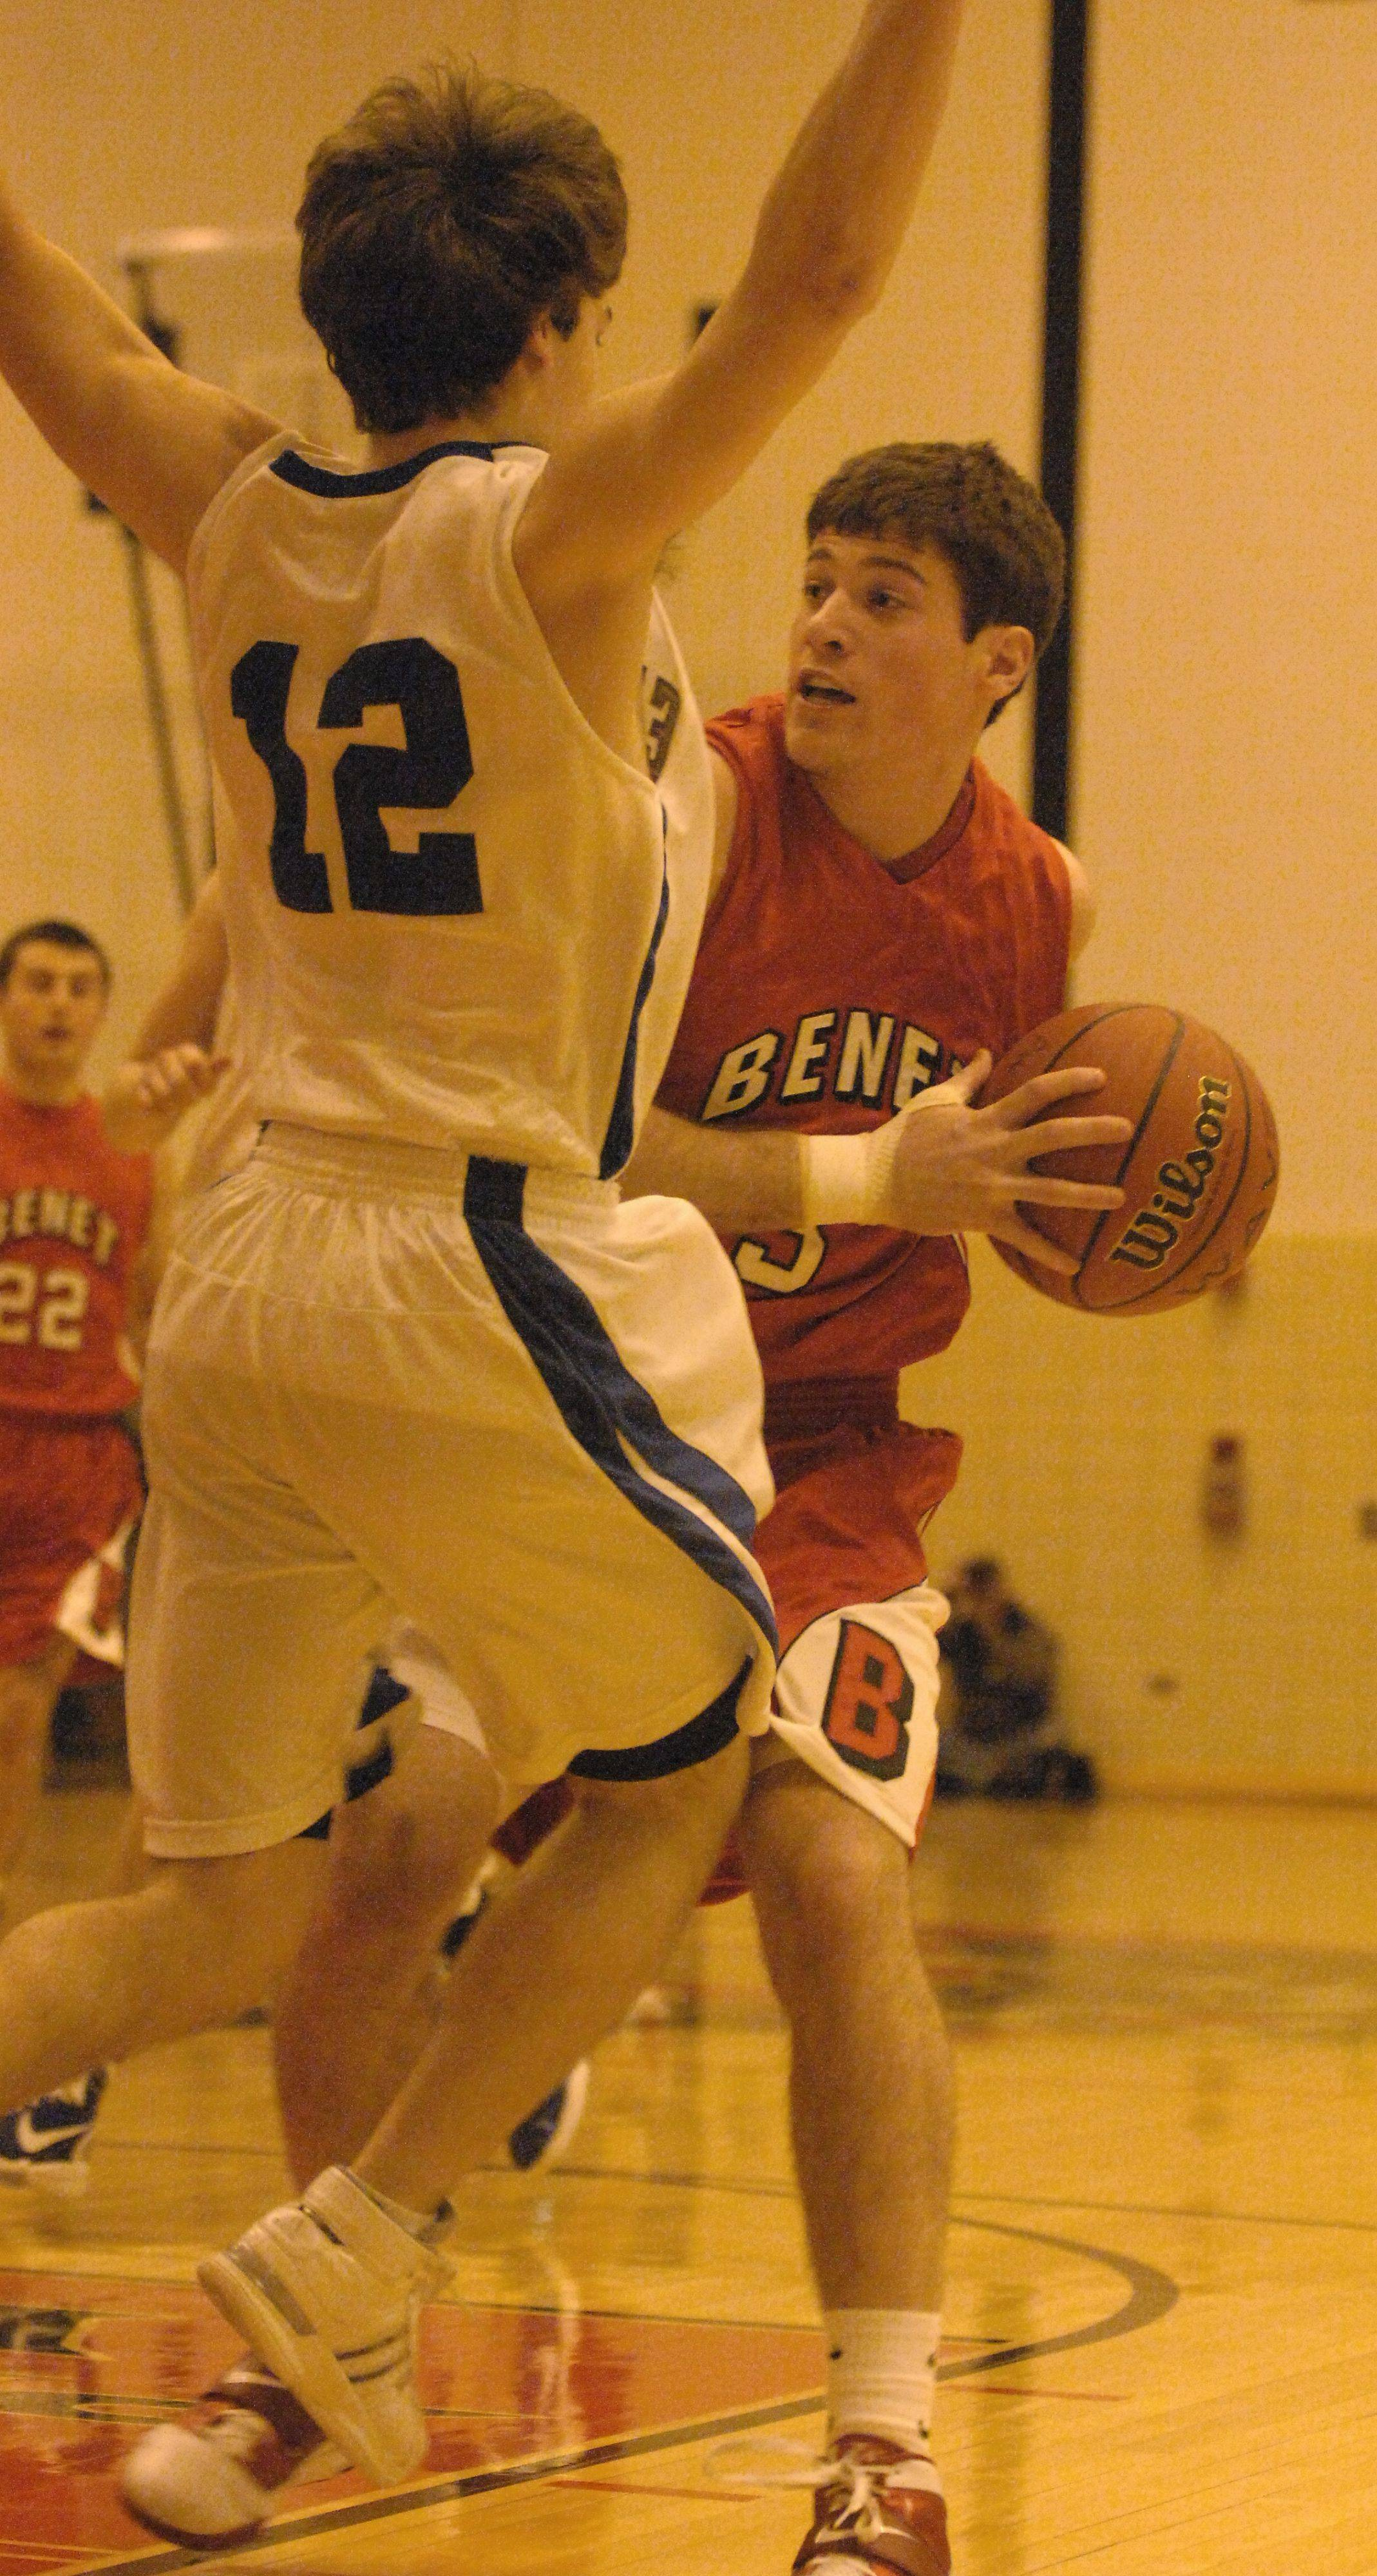 Benet vs. New Trier boys basketball at Proviso West Tuesday.